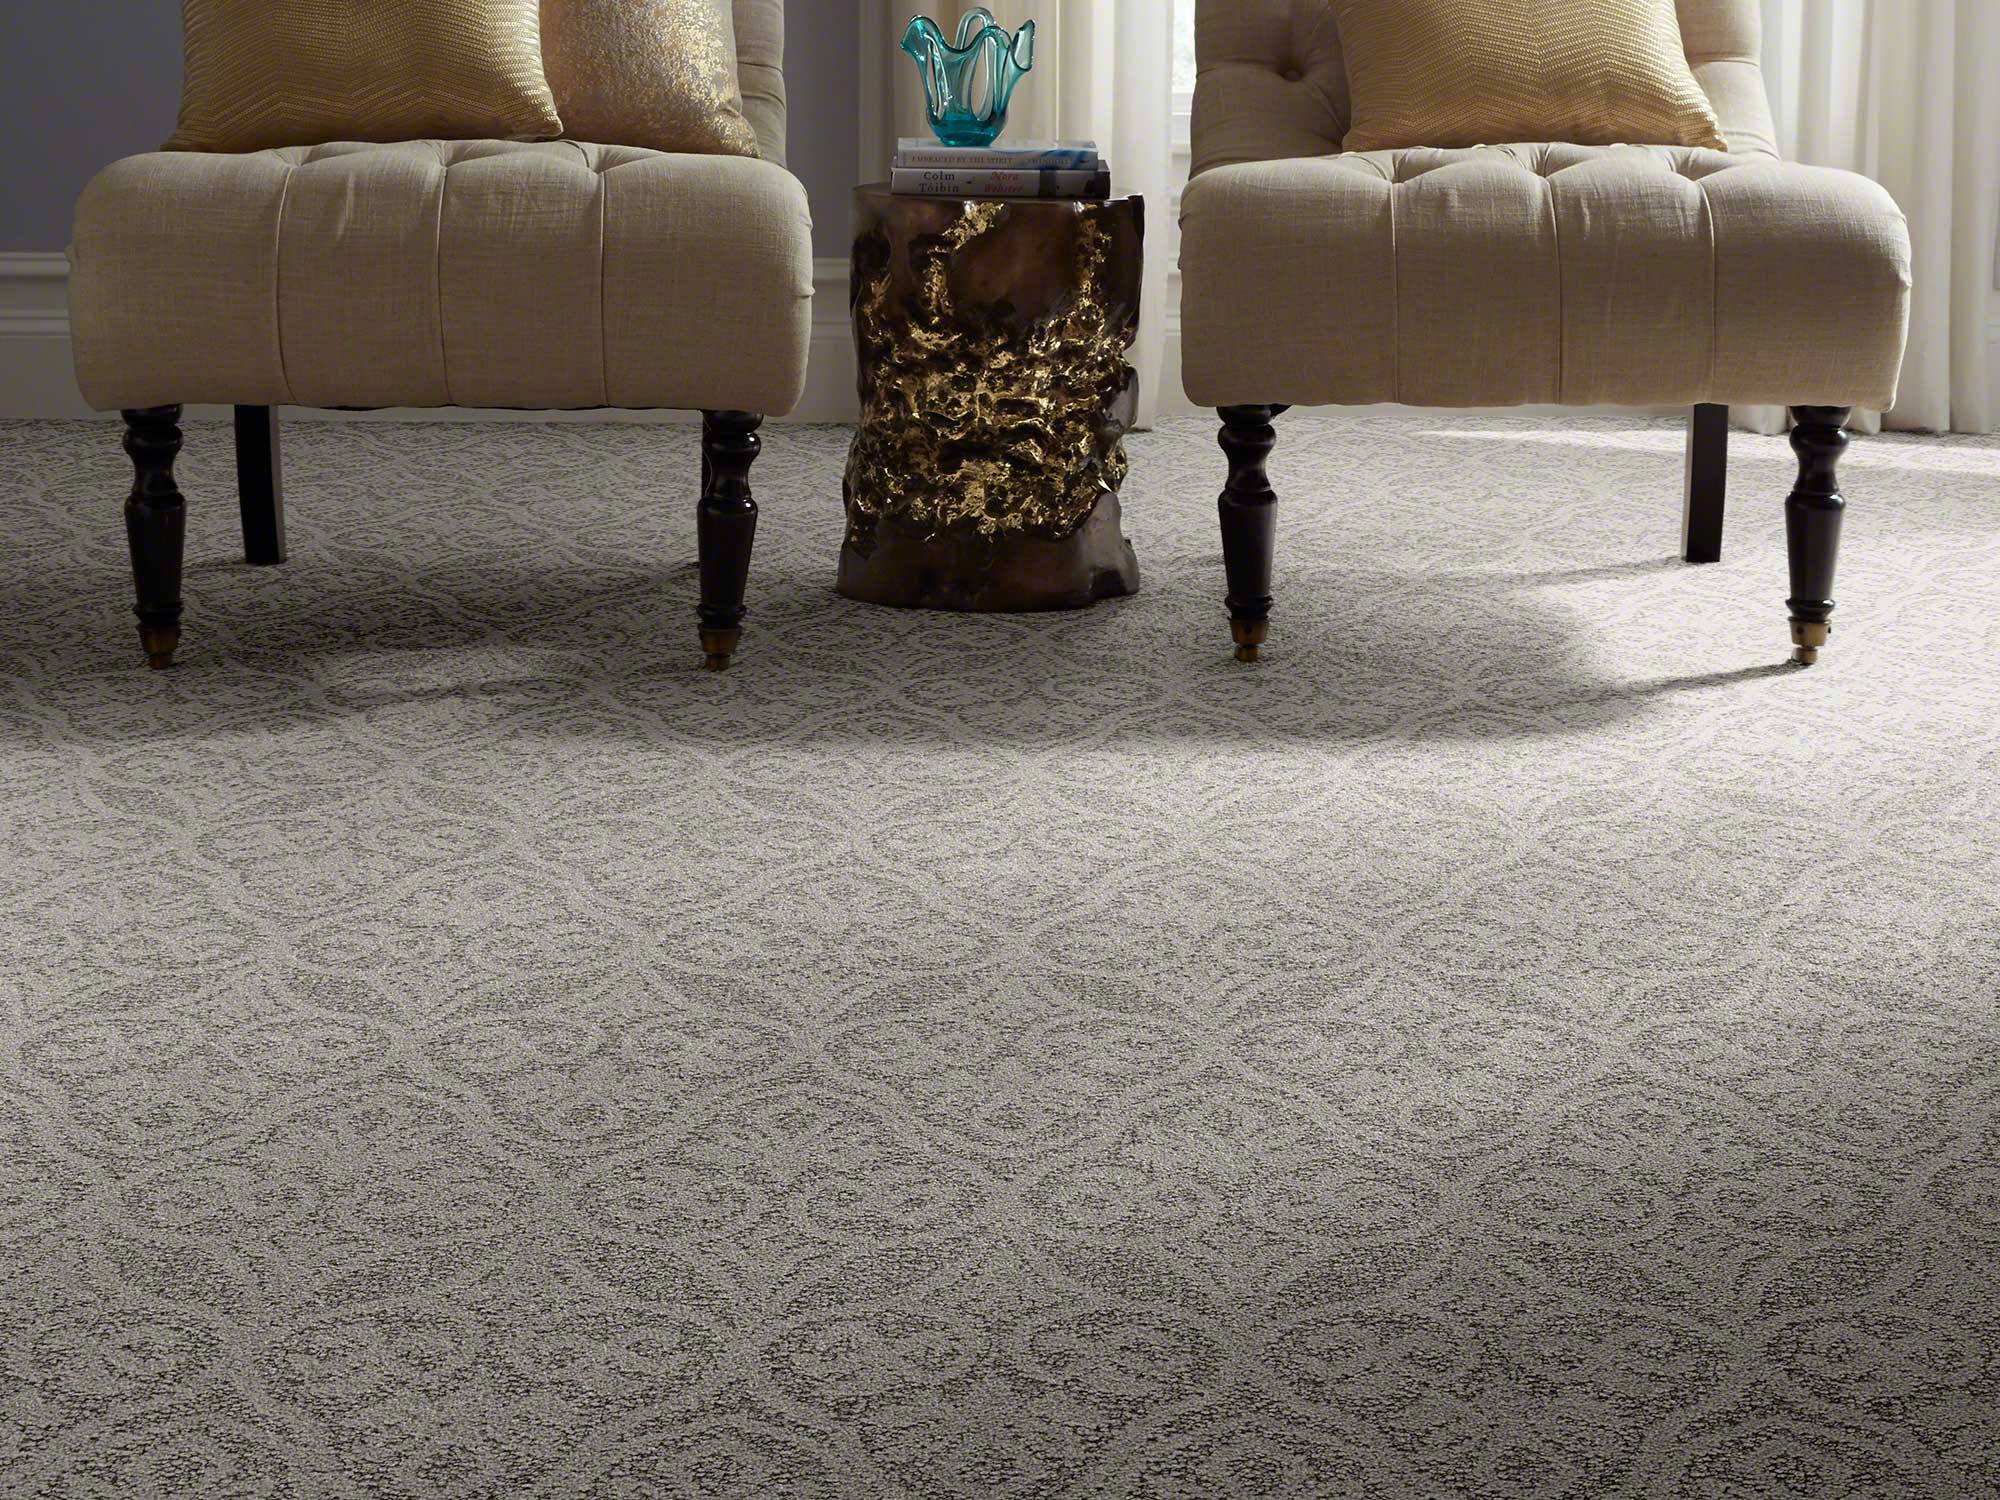 Shaw carpet is a new trend in interior